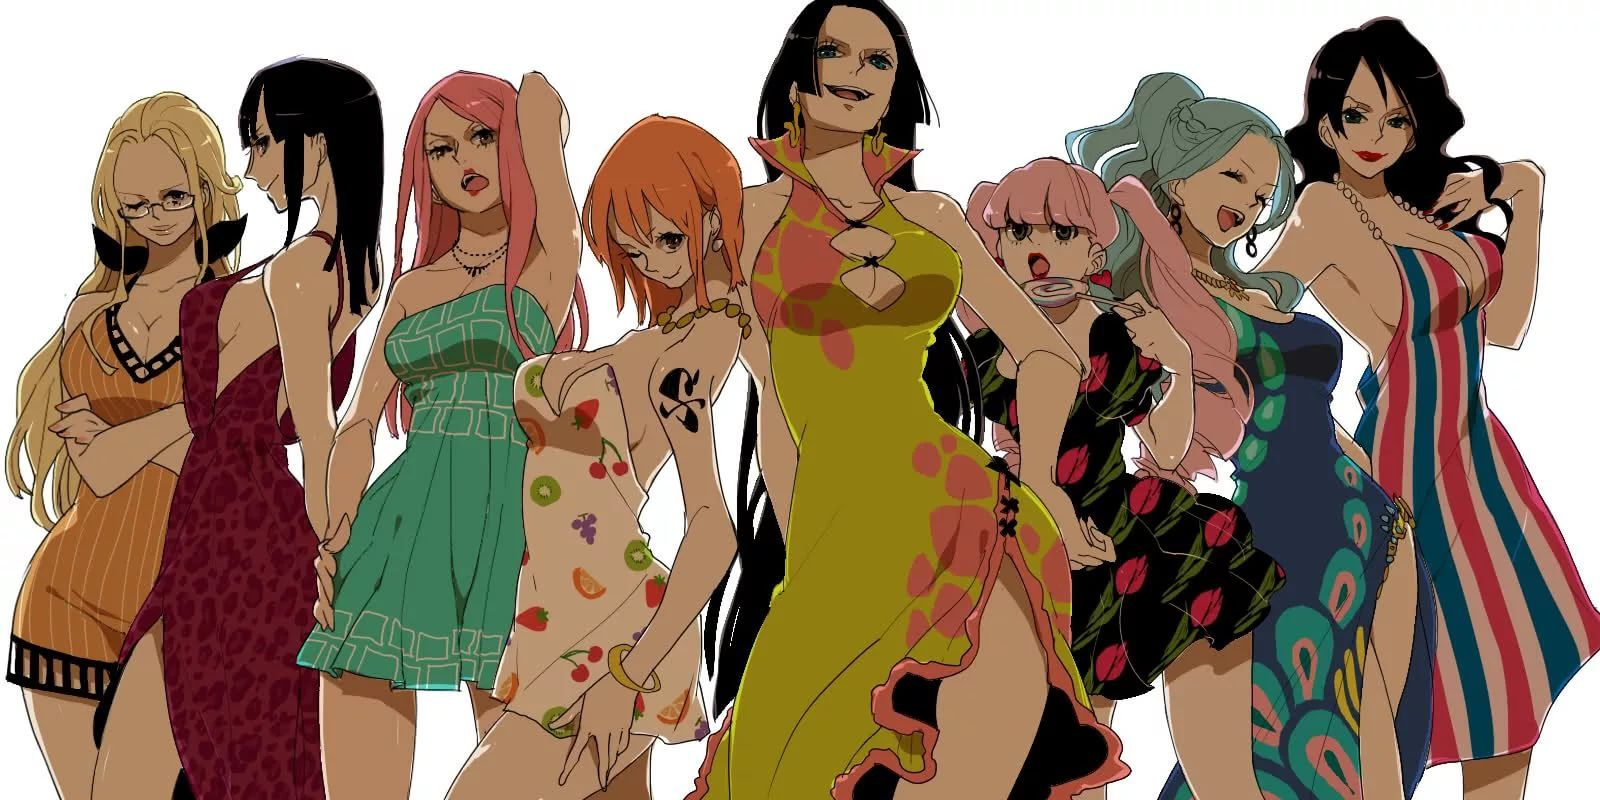 manga-one-piece-pictures-girls-nerd-butt-shy